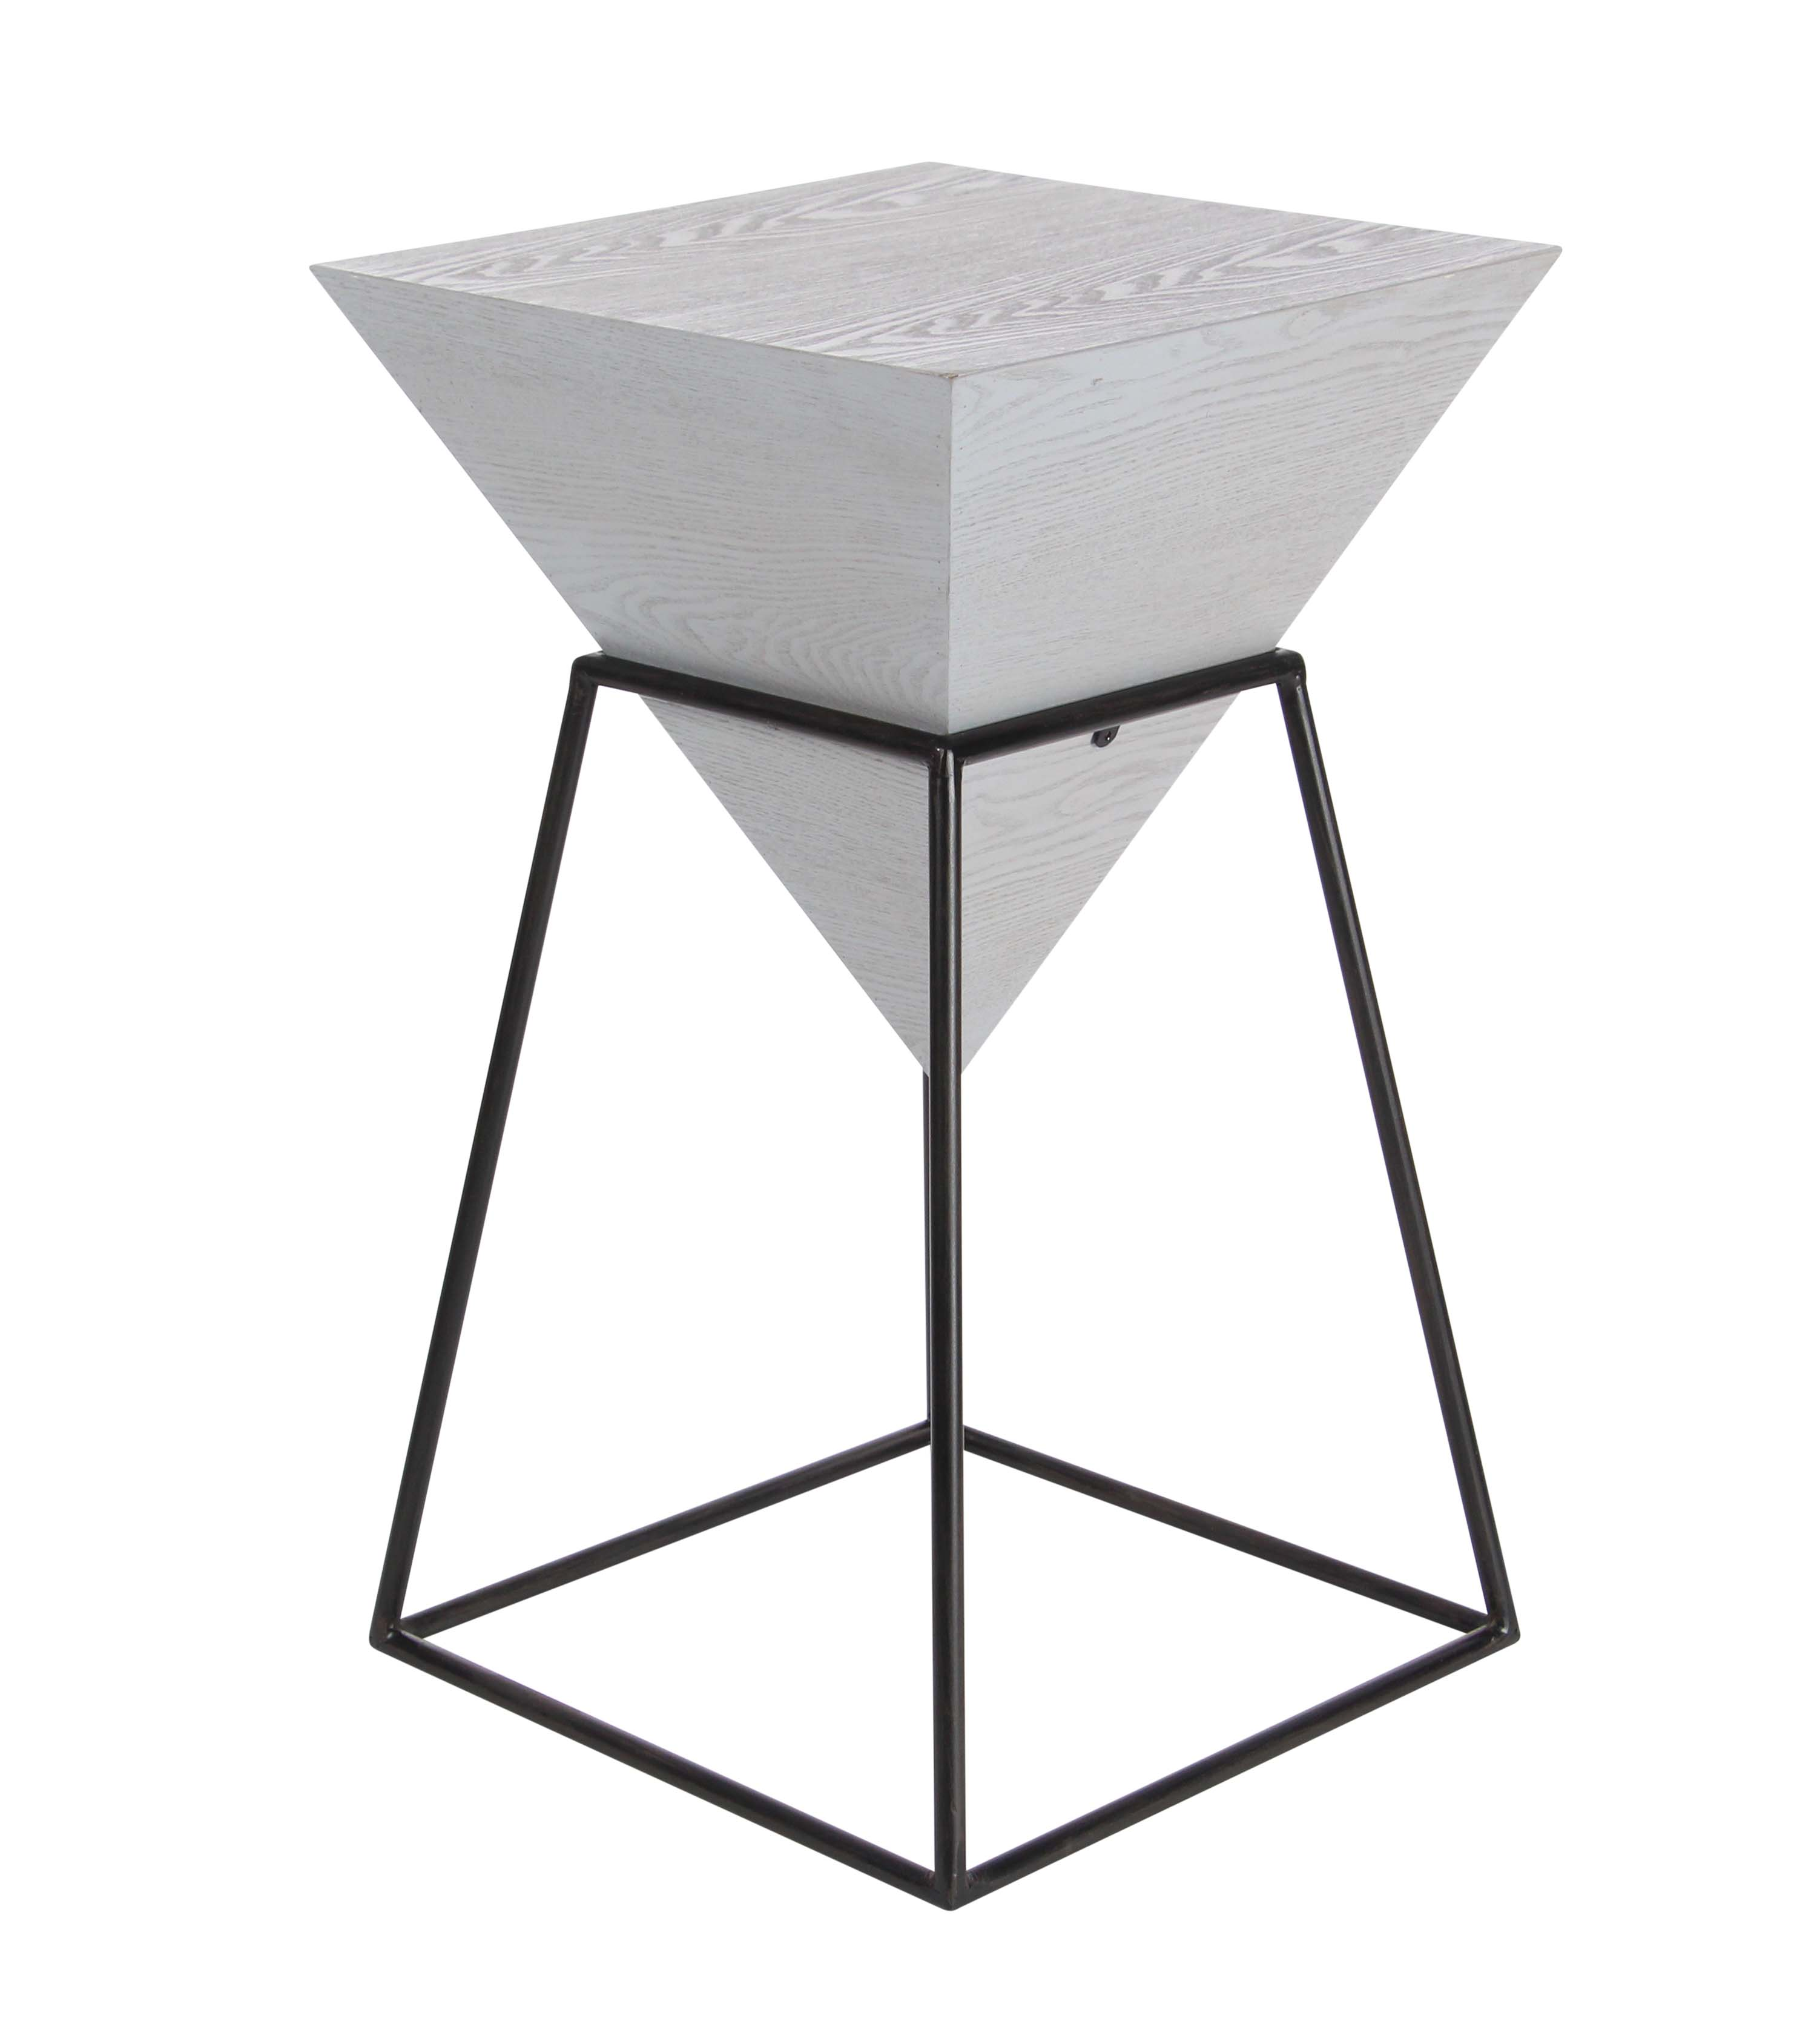 decmode modern inch white wood and metal pyramid accent table high bar cute chair acrylic entry small oak coffee round marble gold legs painted trestle leaf pier chairs plastic